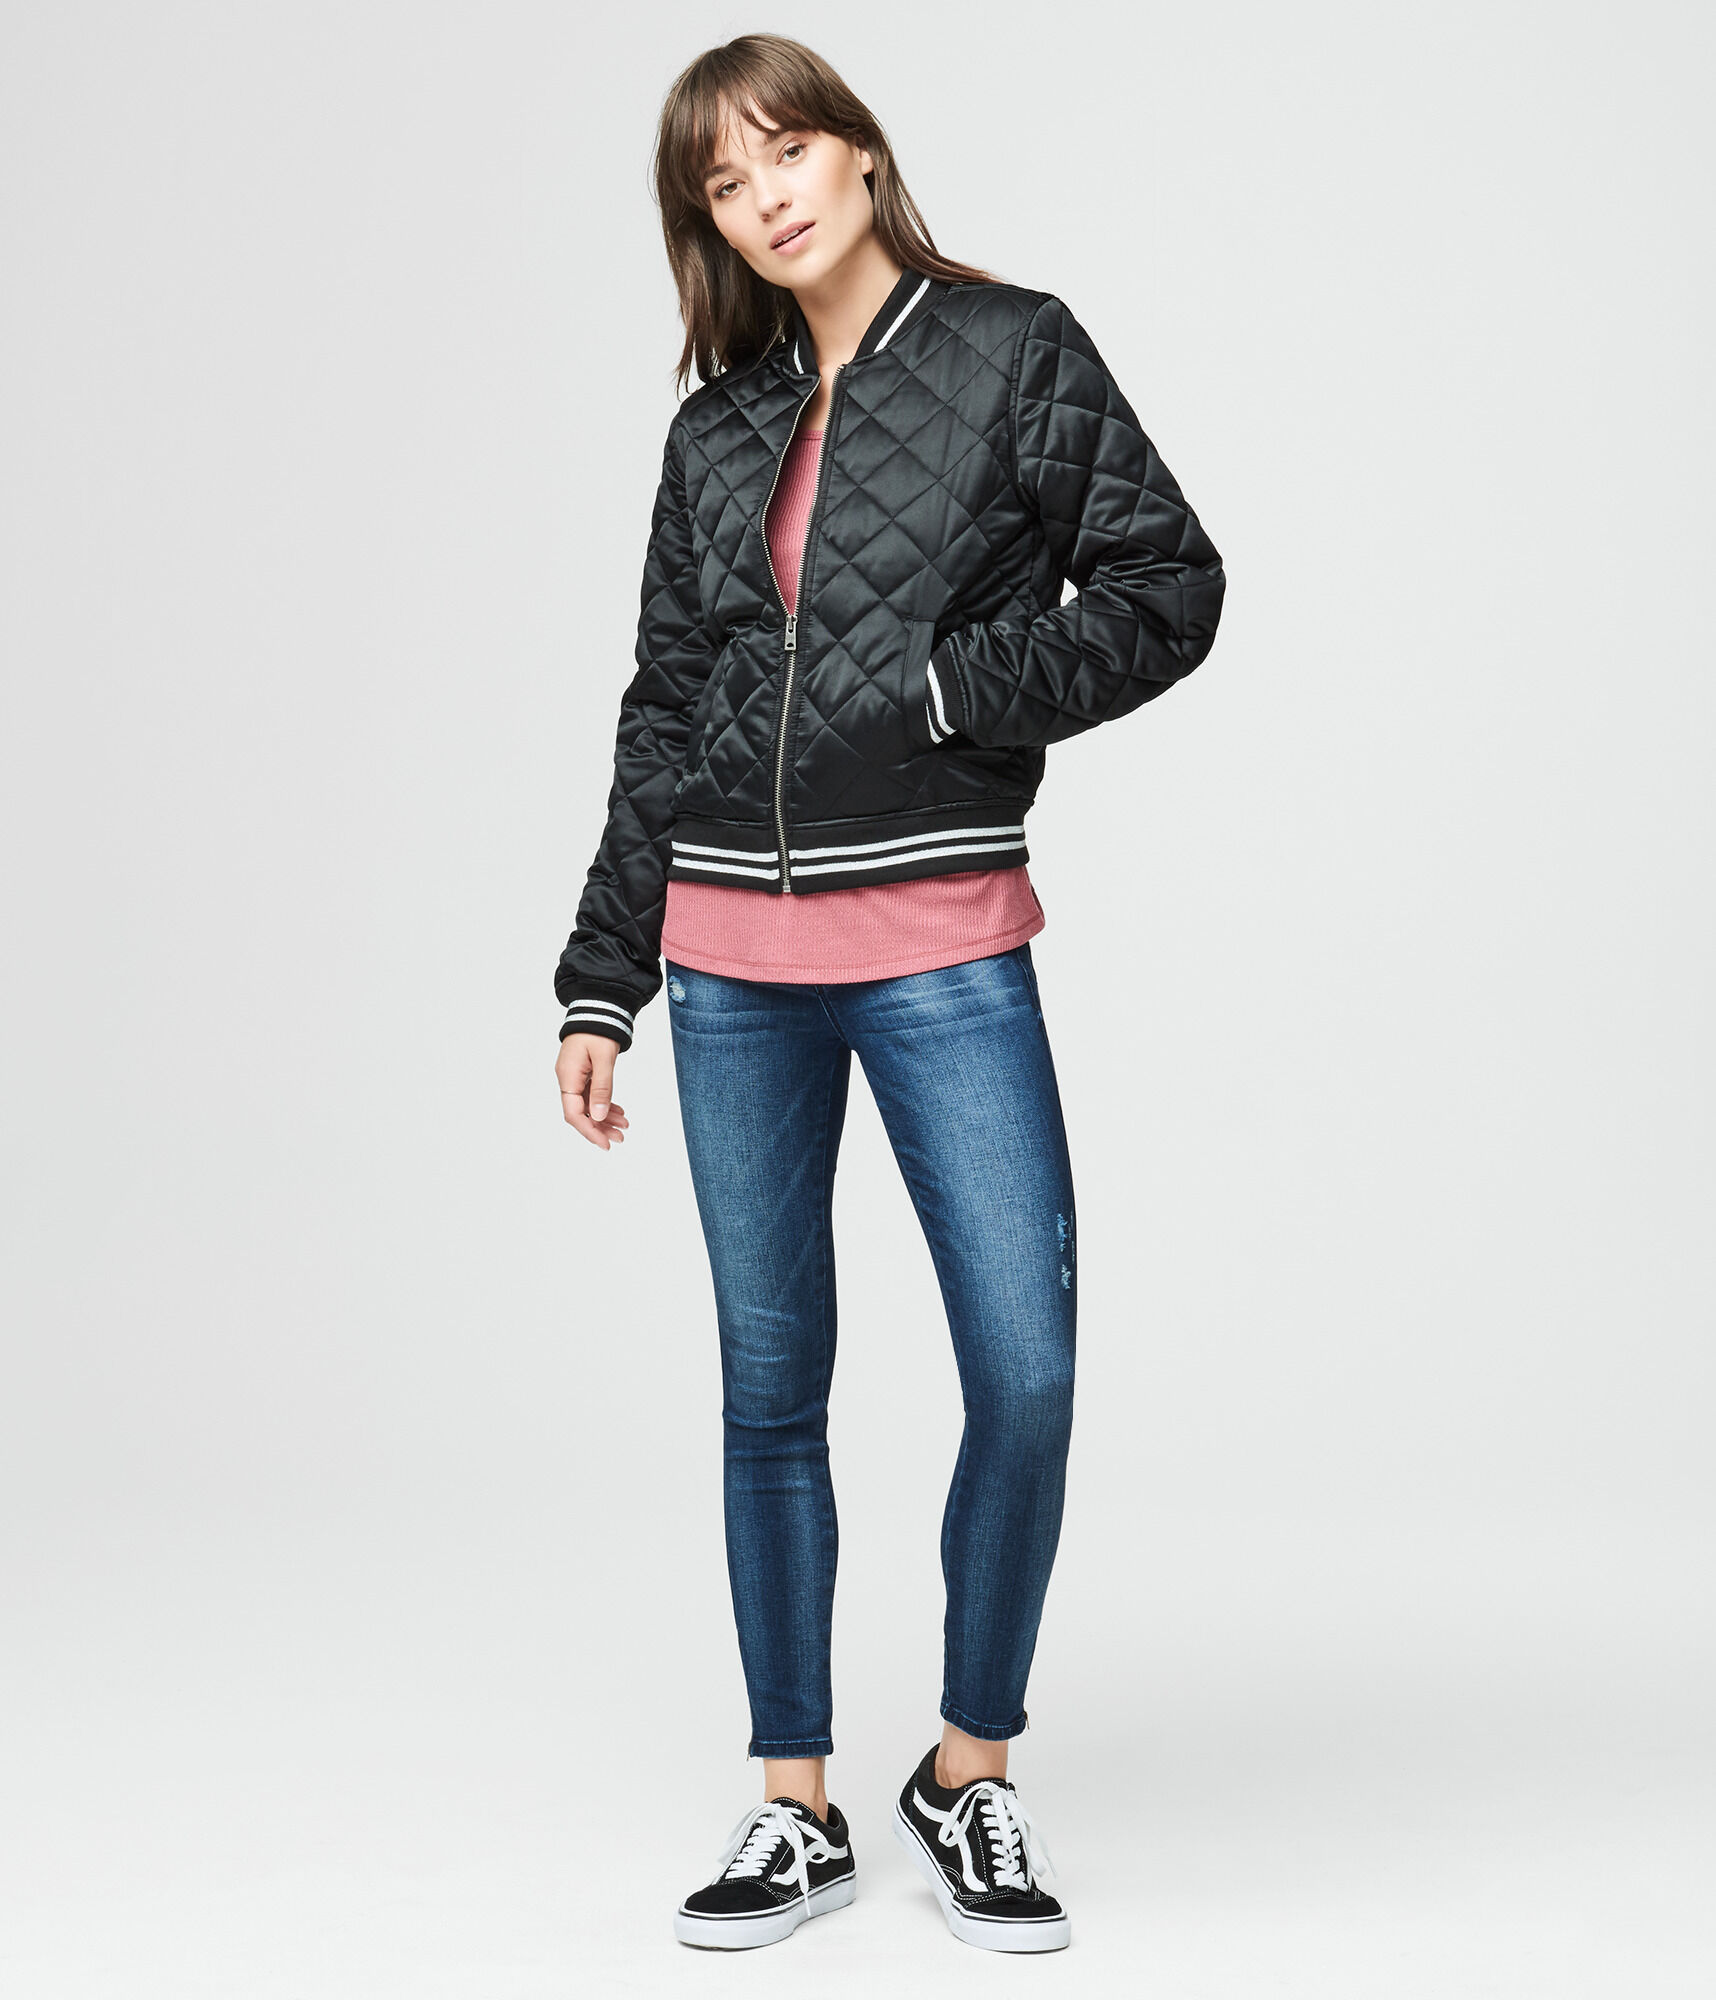 Quilted Bomber Jacket for Teen Girls & Women | Aeropostale